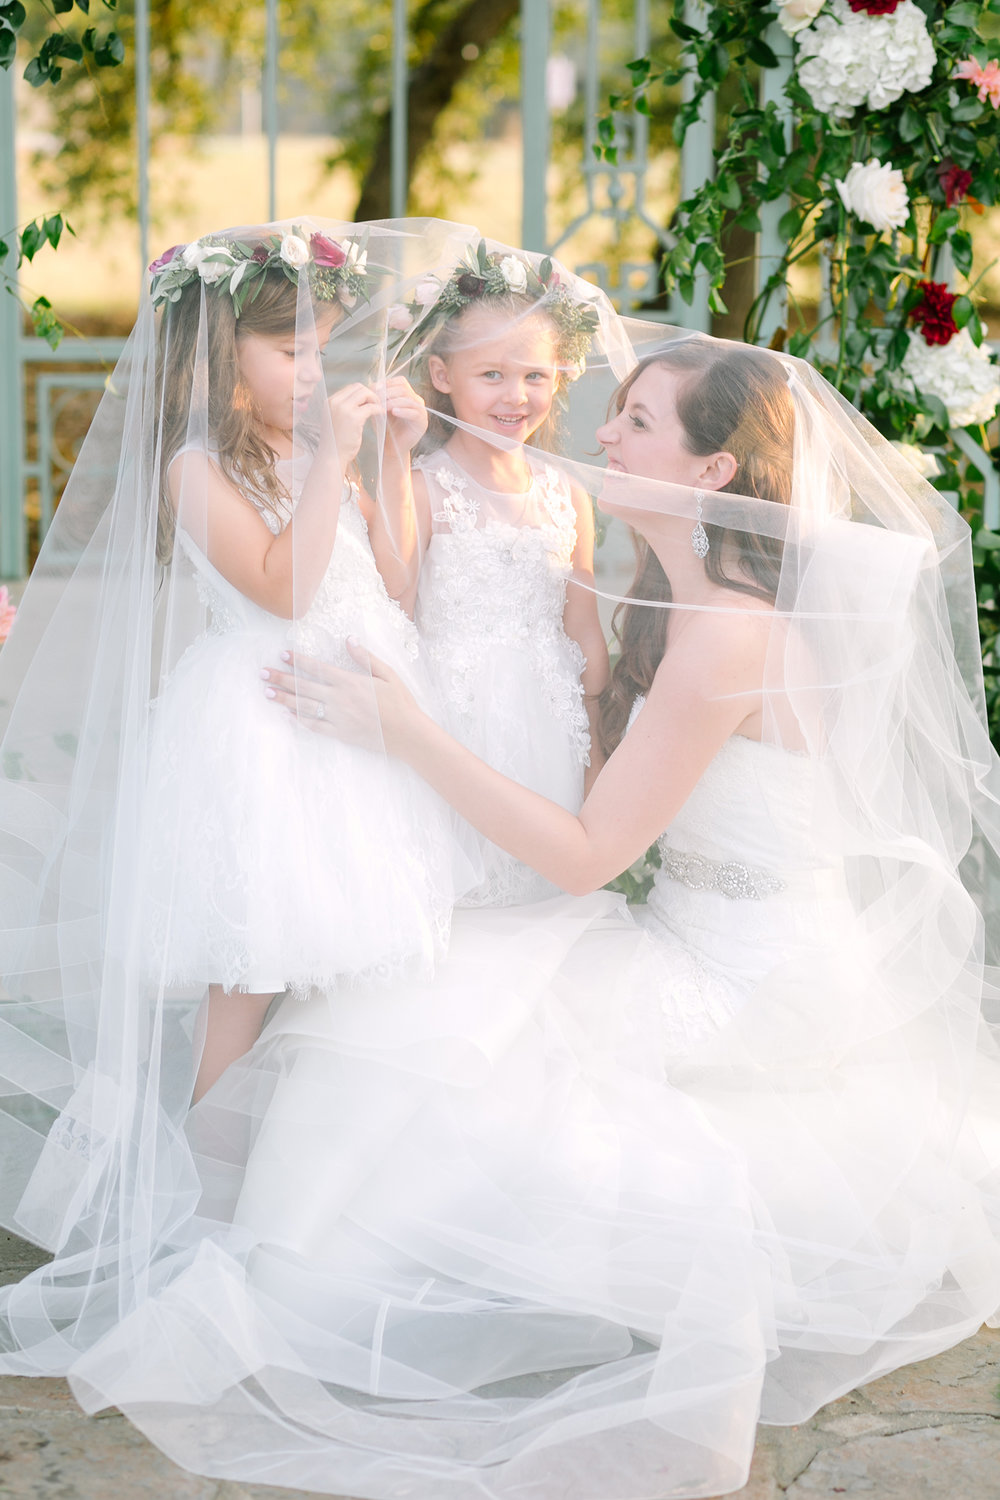 Austin_Wedding_Photographer_Kimberly_Brooke_Photographic_087.jpg